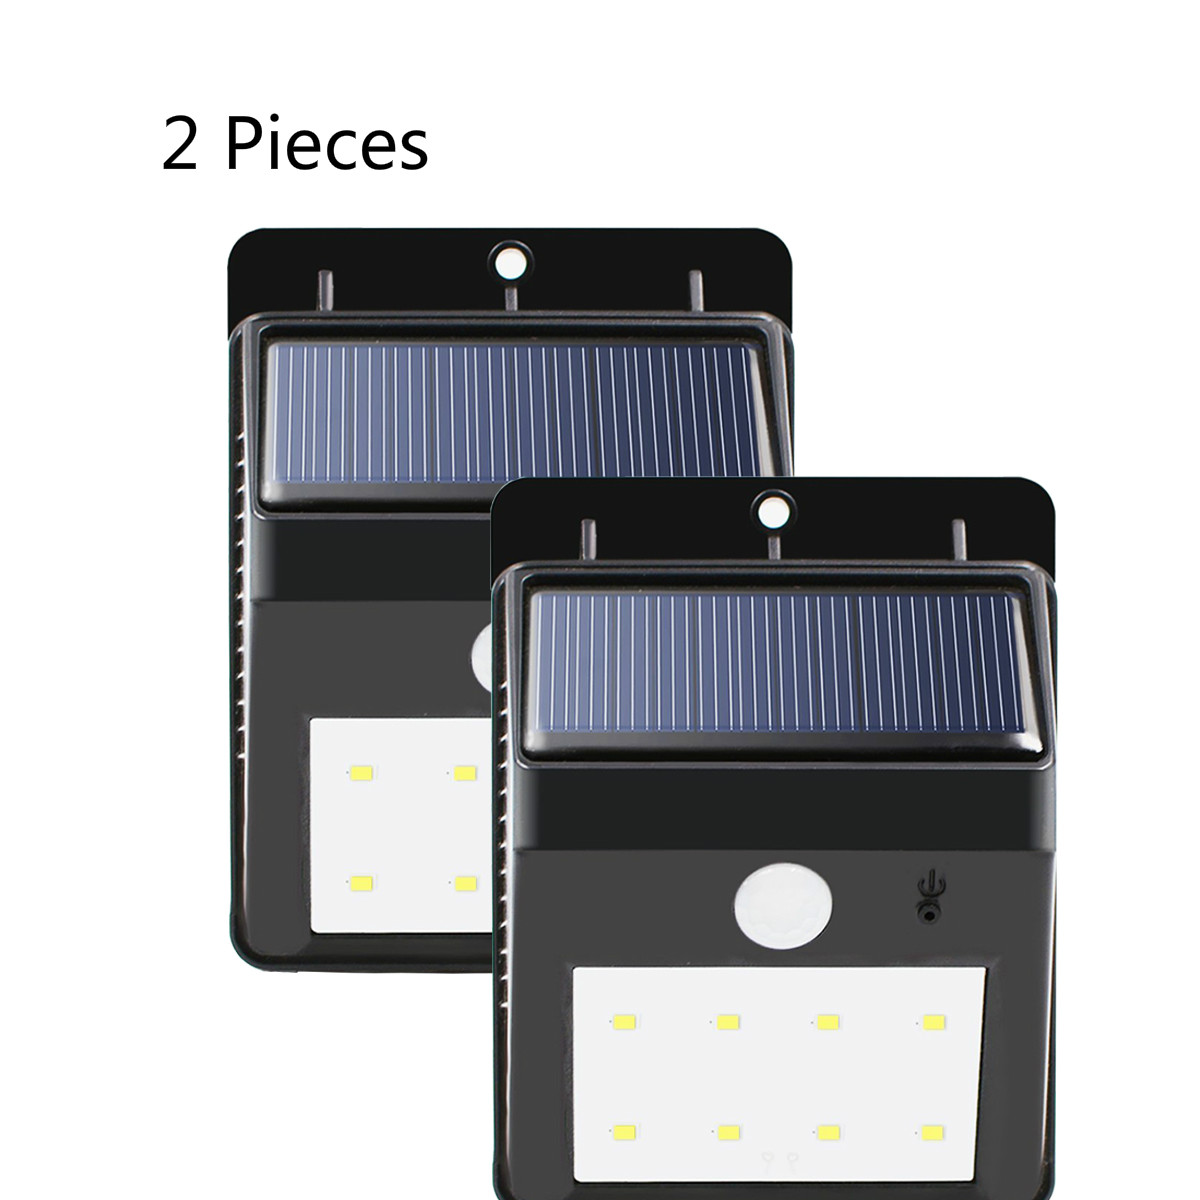 solar lamps luminaria energia 8 leds security wireless motion sensor solar panels power outdoor light led